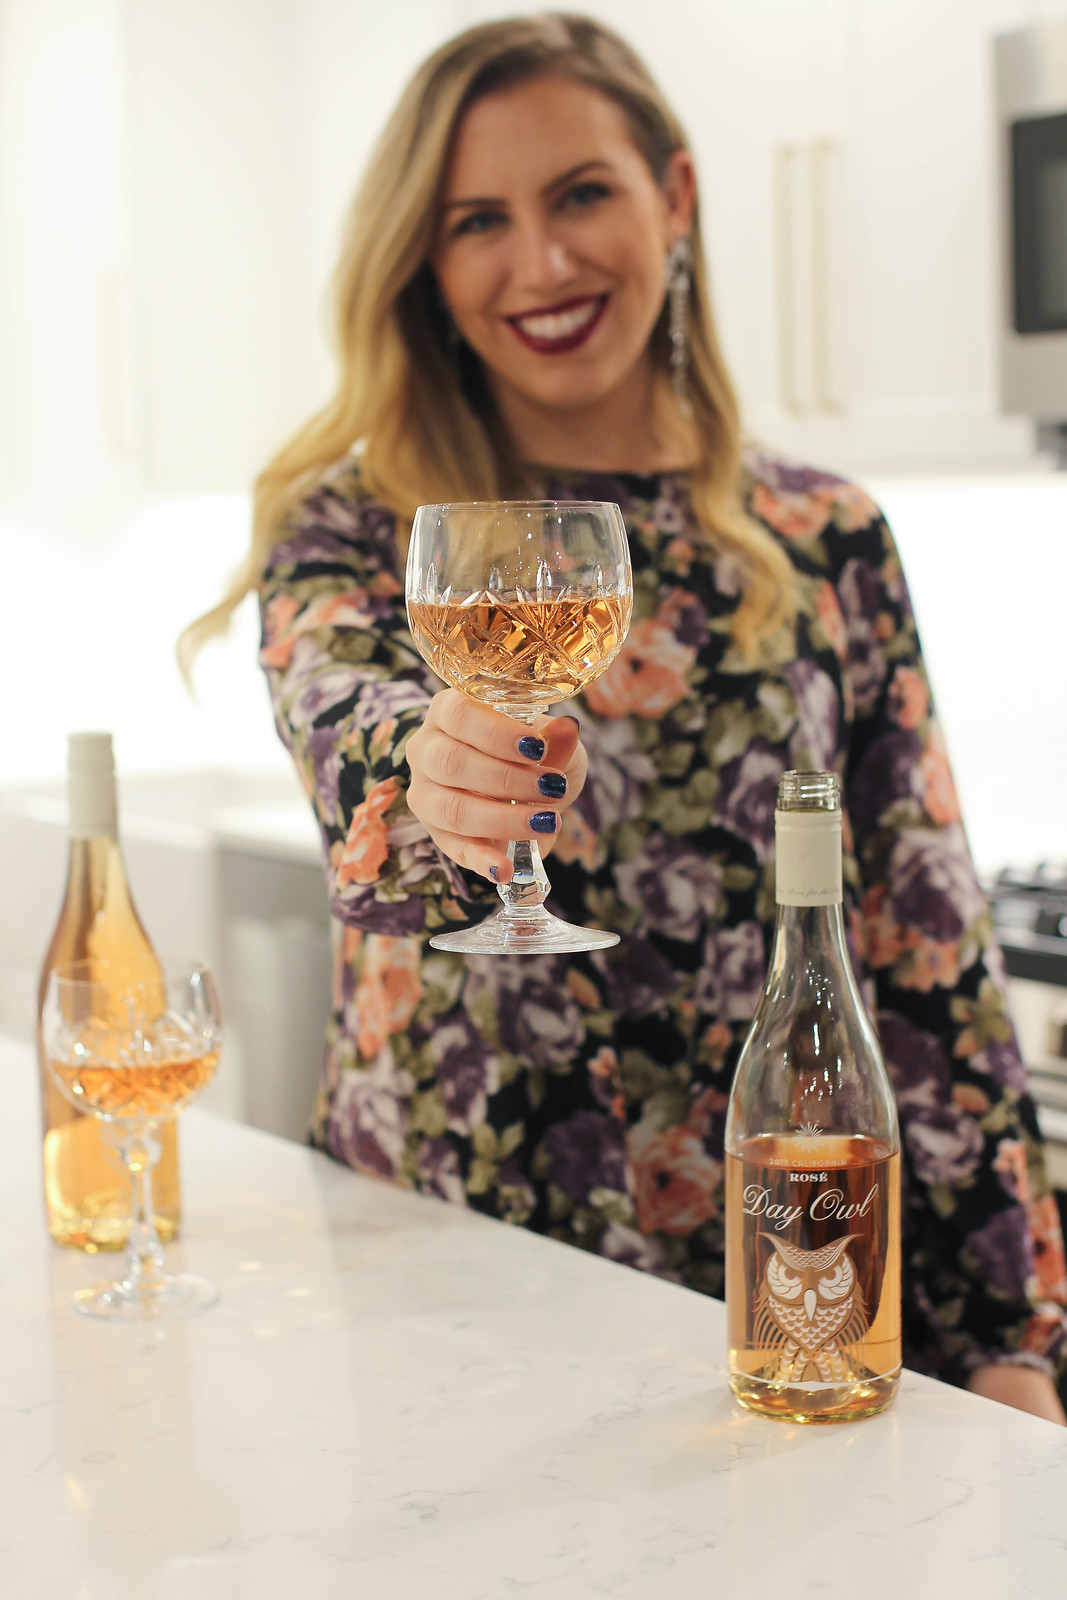 Cheers to New Beginnings & New Holiday Traditions with Day Owl Rosé